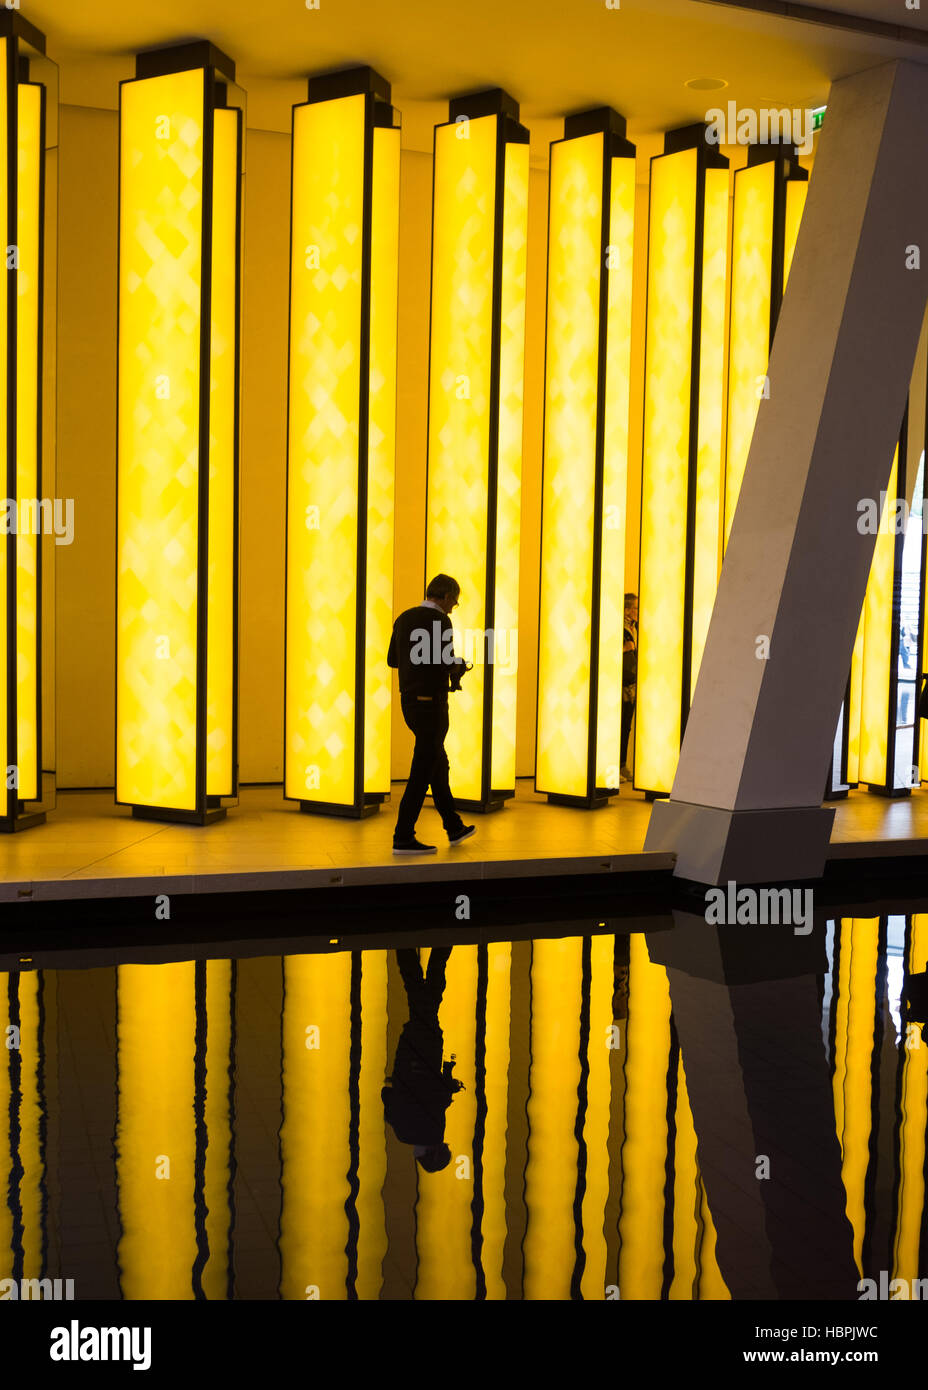 Olafur Eliasson, artwork 'Inside the Horizon' at Louis Vuitton Foundation, Louis Vuitton Fondation,Paris,France. - Stock Image